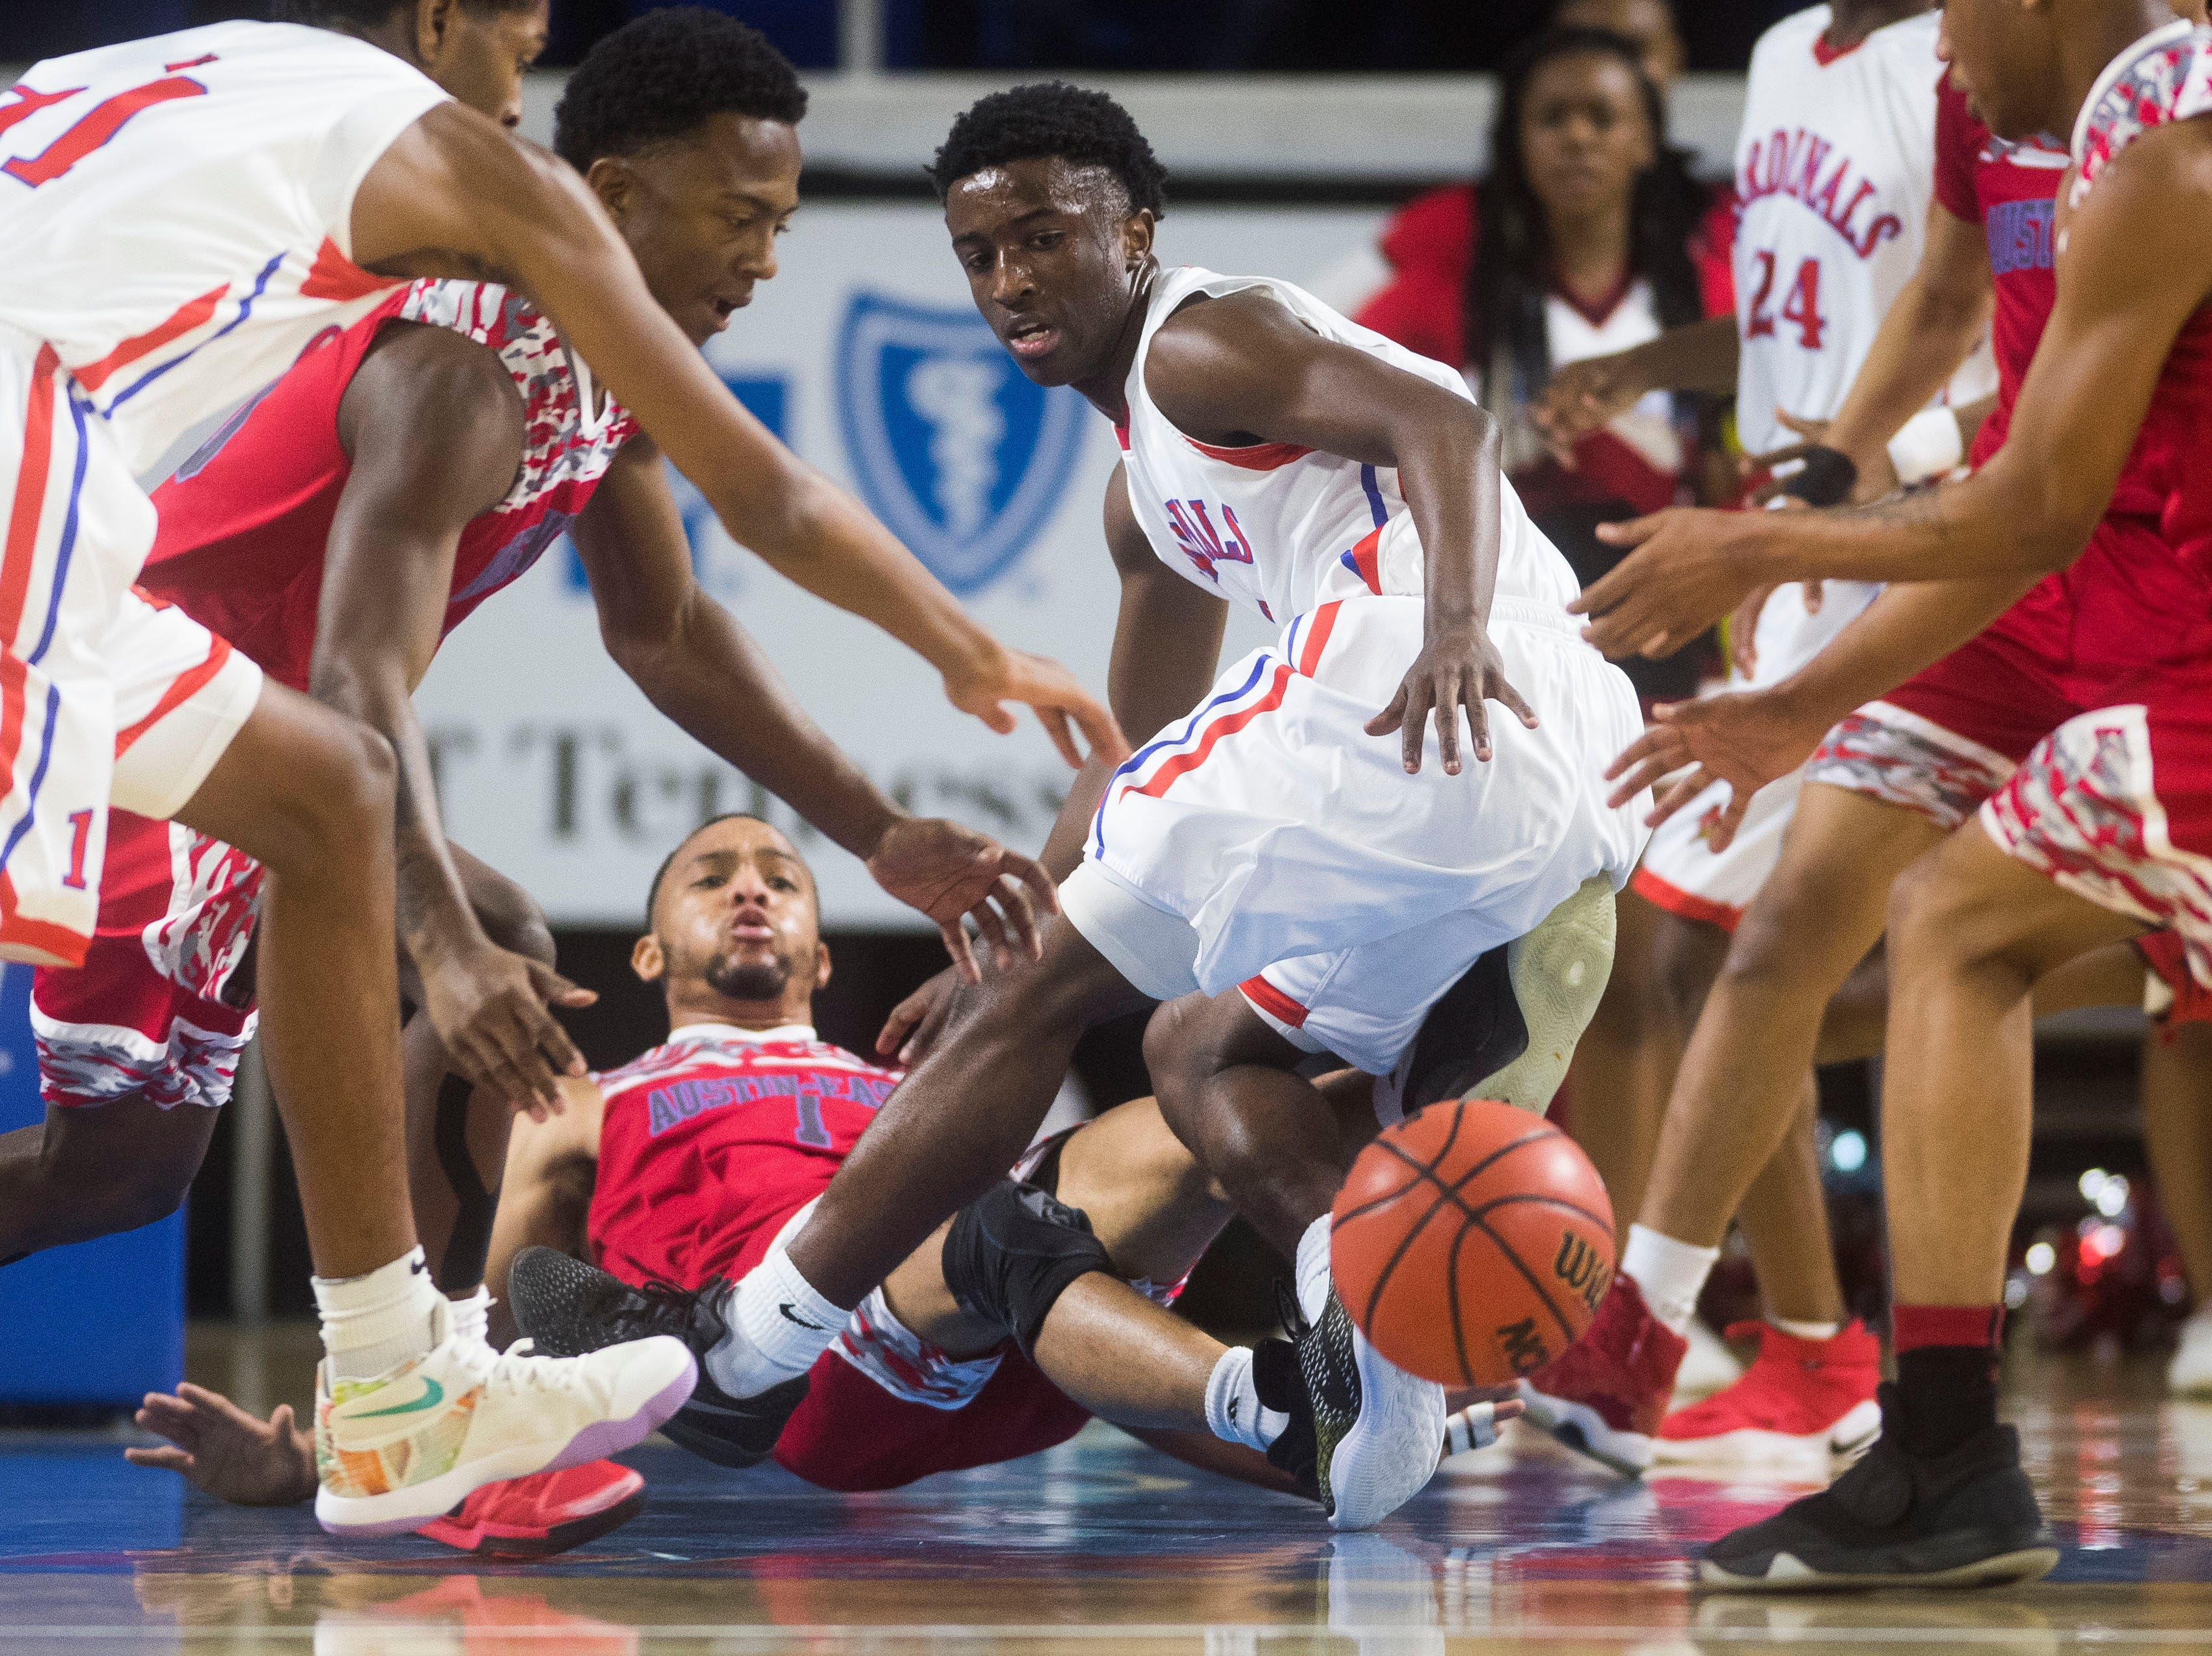 Players scramble for the ball during a TSSAA AA state quarterfinal game between Austin-East and Wooddale at the Murphy Center in Murfreesboro, Wednesday, March 13, 2019.